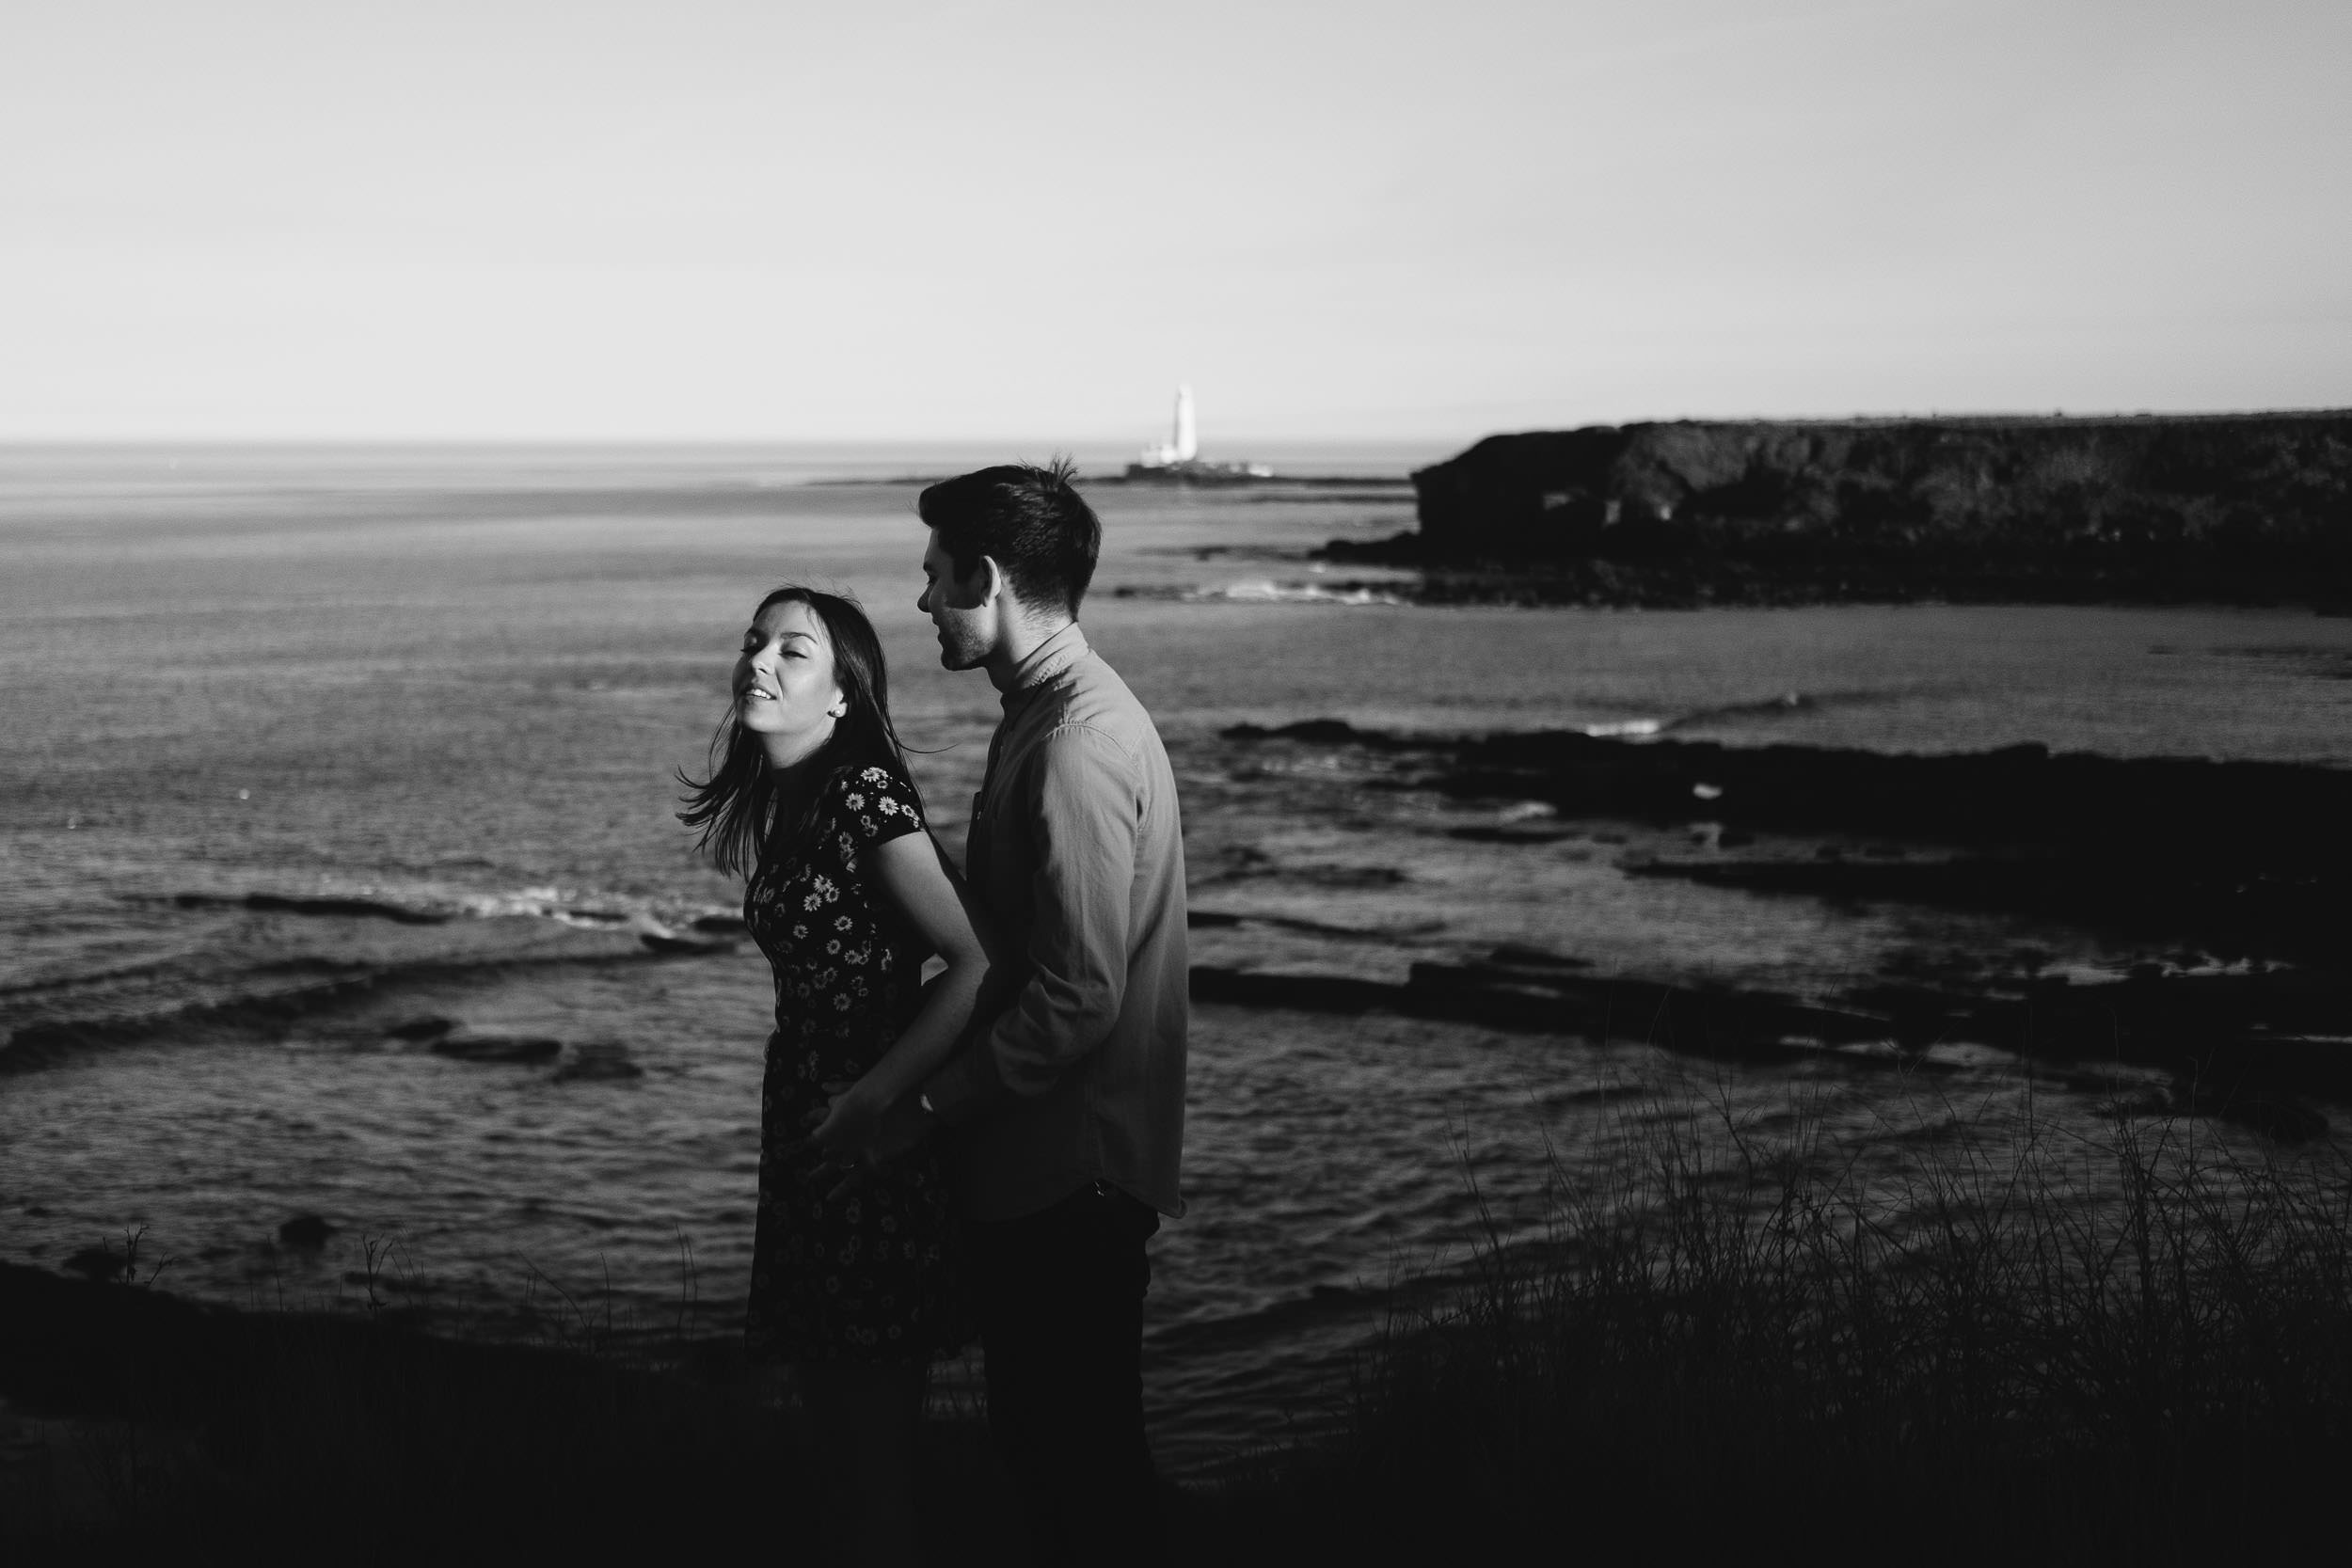 Couple in sexy light at coast on black and white photo